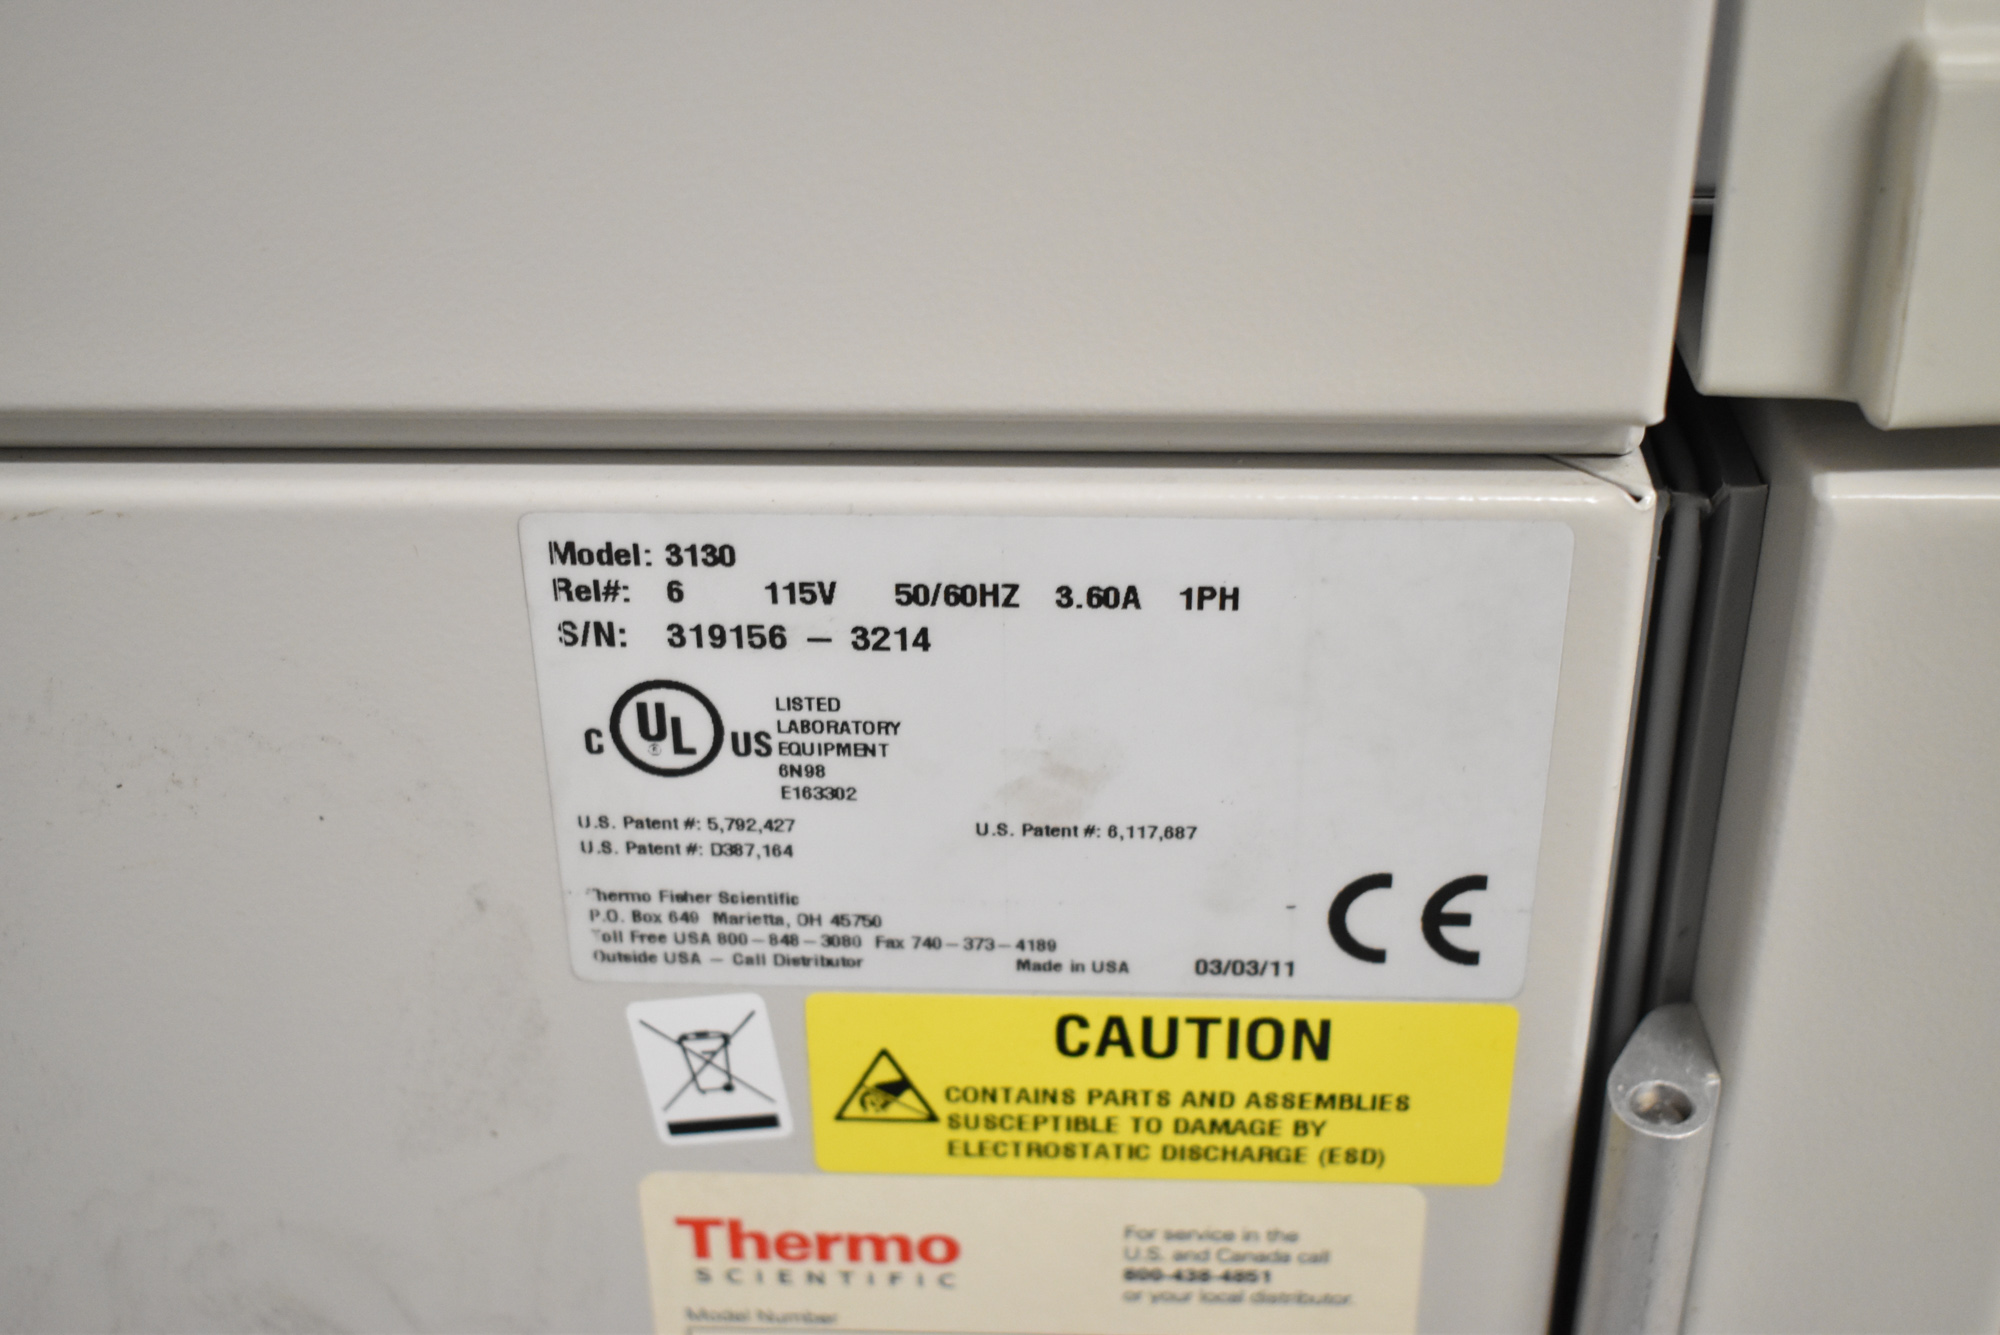 THERMO SCIENTIFIC 3130 FORMA SERIES II WATER JACKET CO2 INCUBATOR WITH DIGITAL MICROPROCESSOR - Image 8 of 8